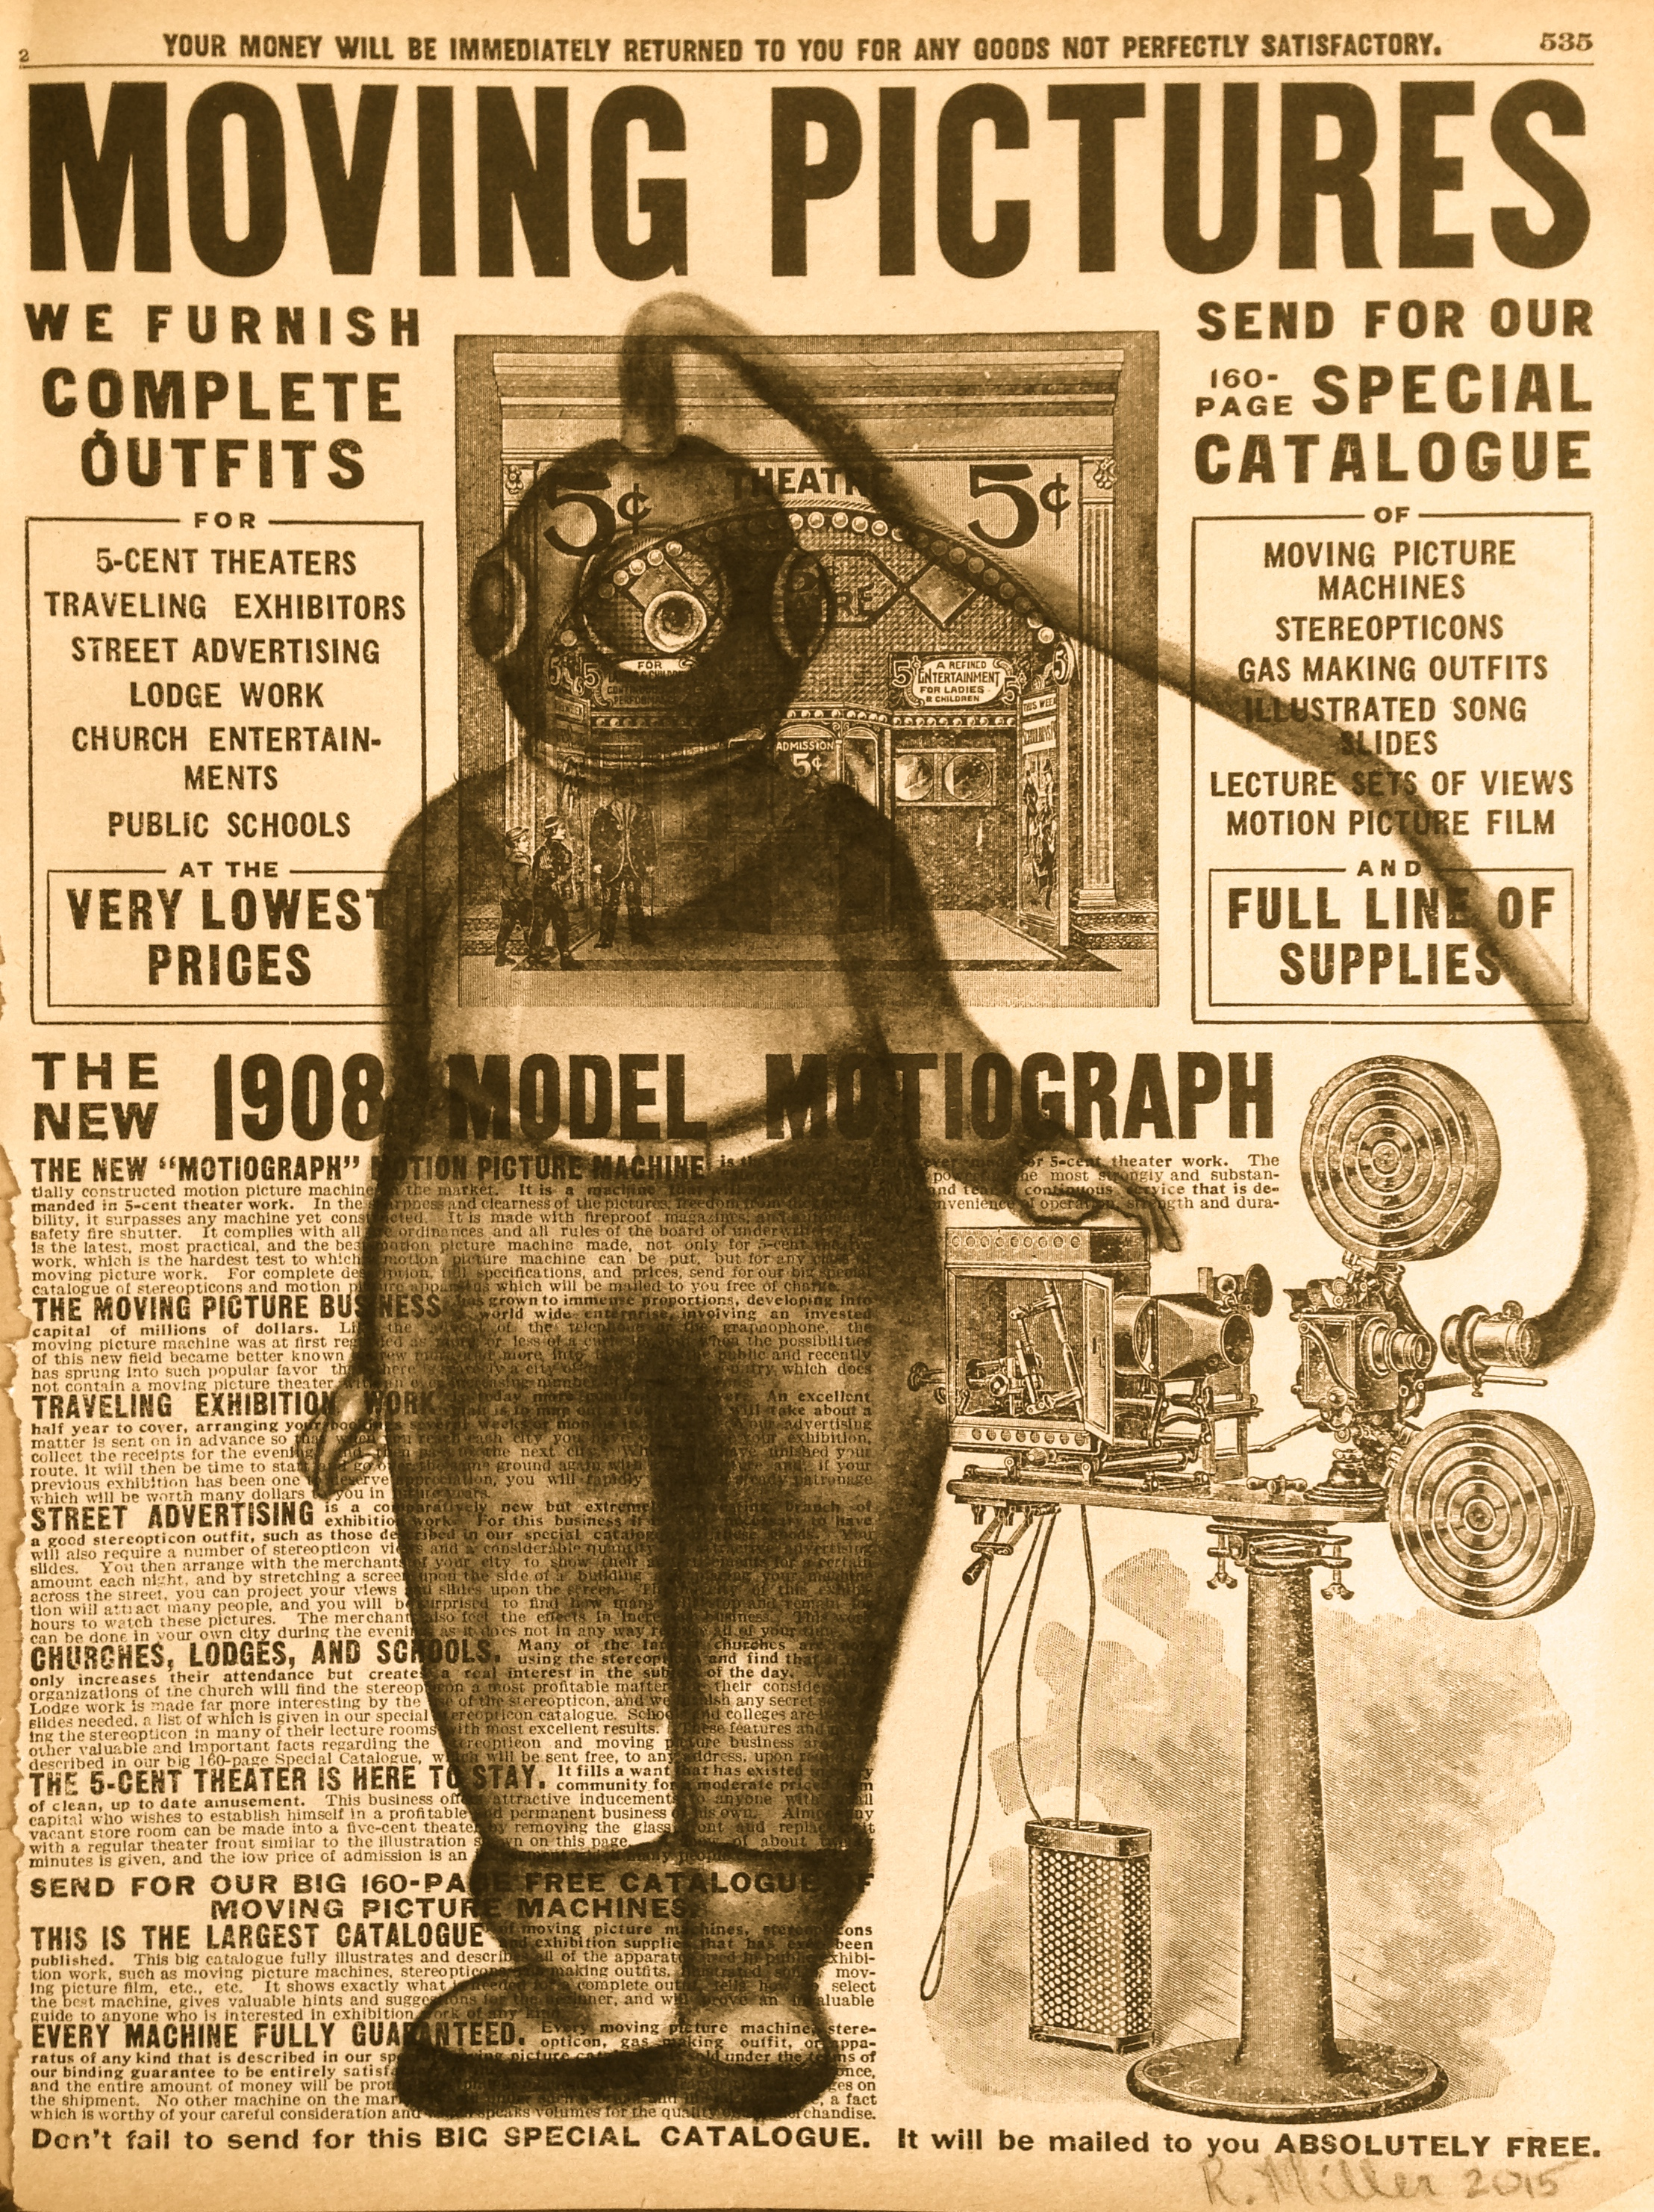 Outfitted2015   Charcoal on antique catalog